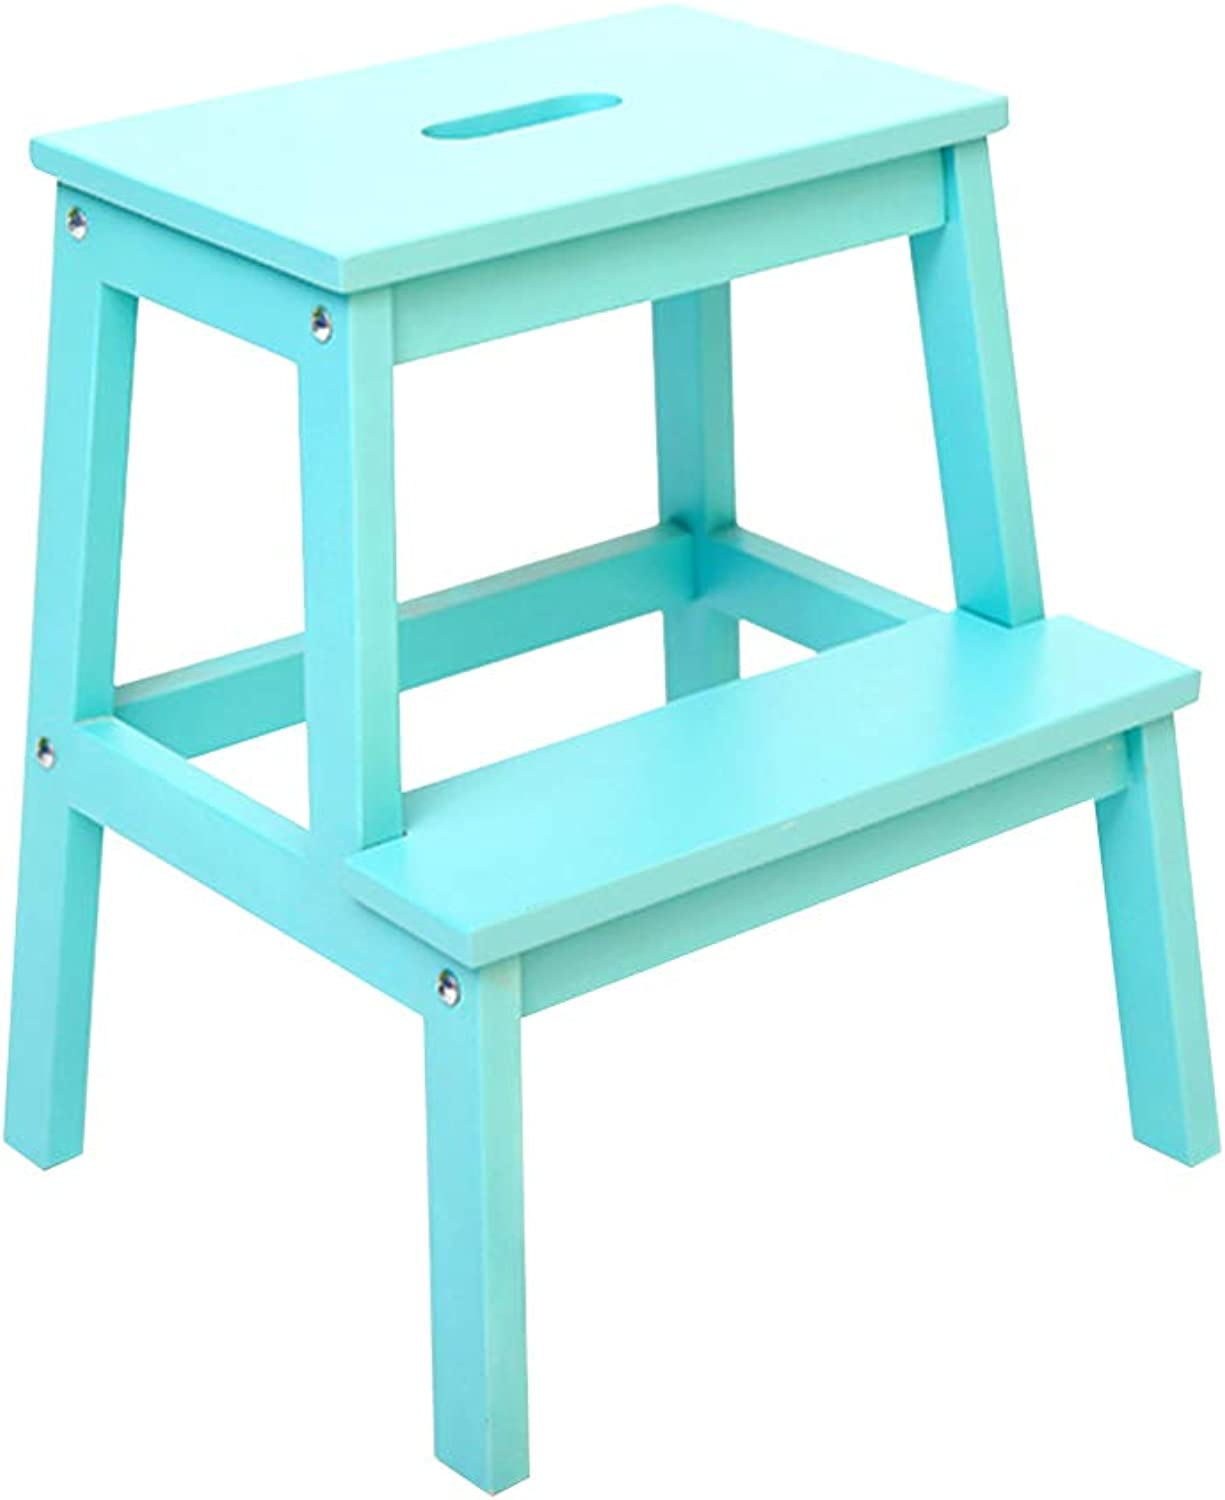 Ladder Step Stool, Solid Wood 2 Steps Stool Ladder Dual Purpose Hollow Portable Handle Household Ascend Change shoes 10 colors (color   bluee)